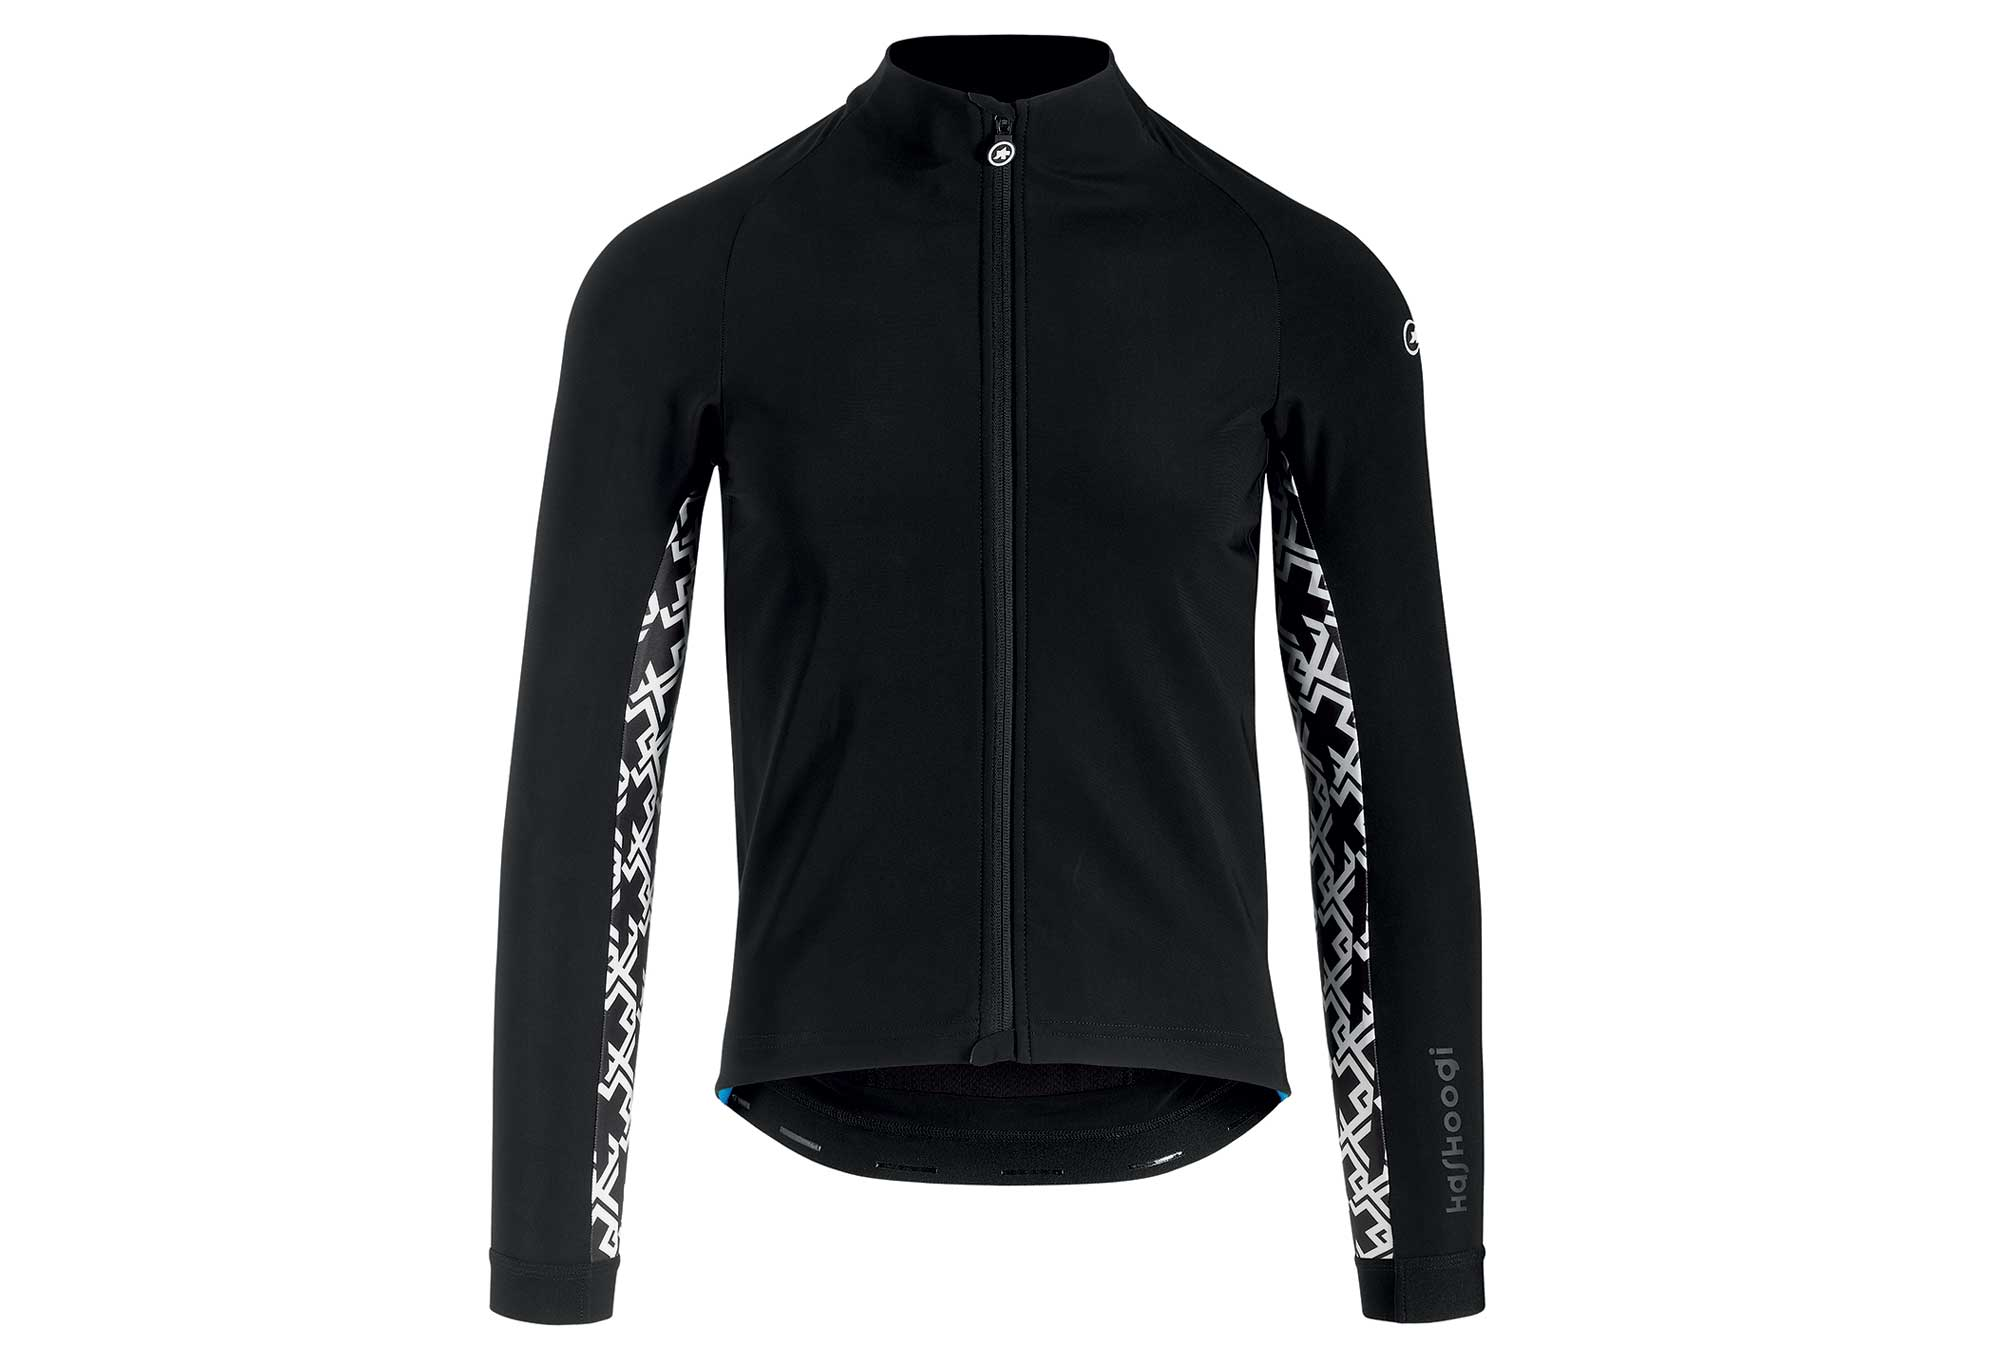 Assos Mille GT Jacket Winter Thermal Jacket Black White  a233912cf